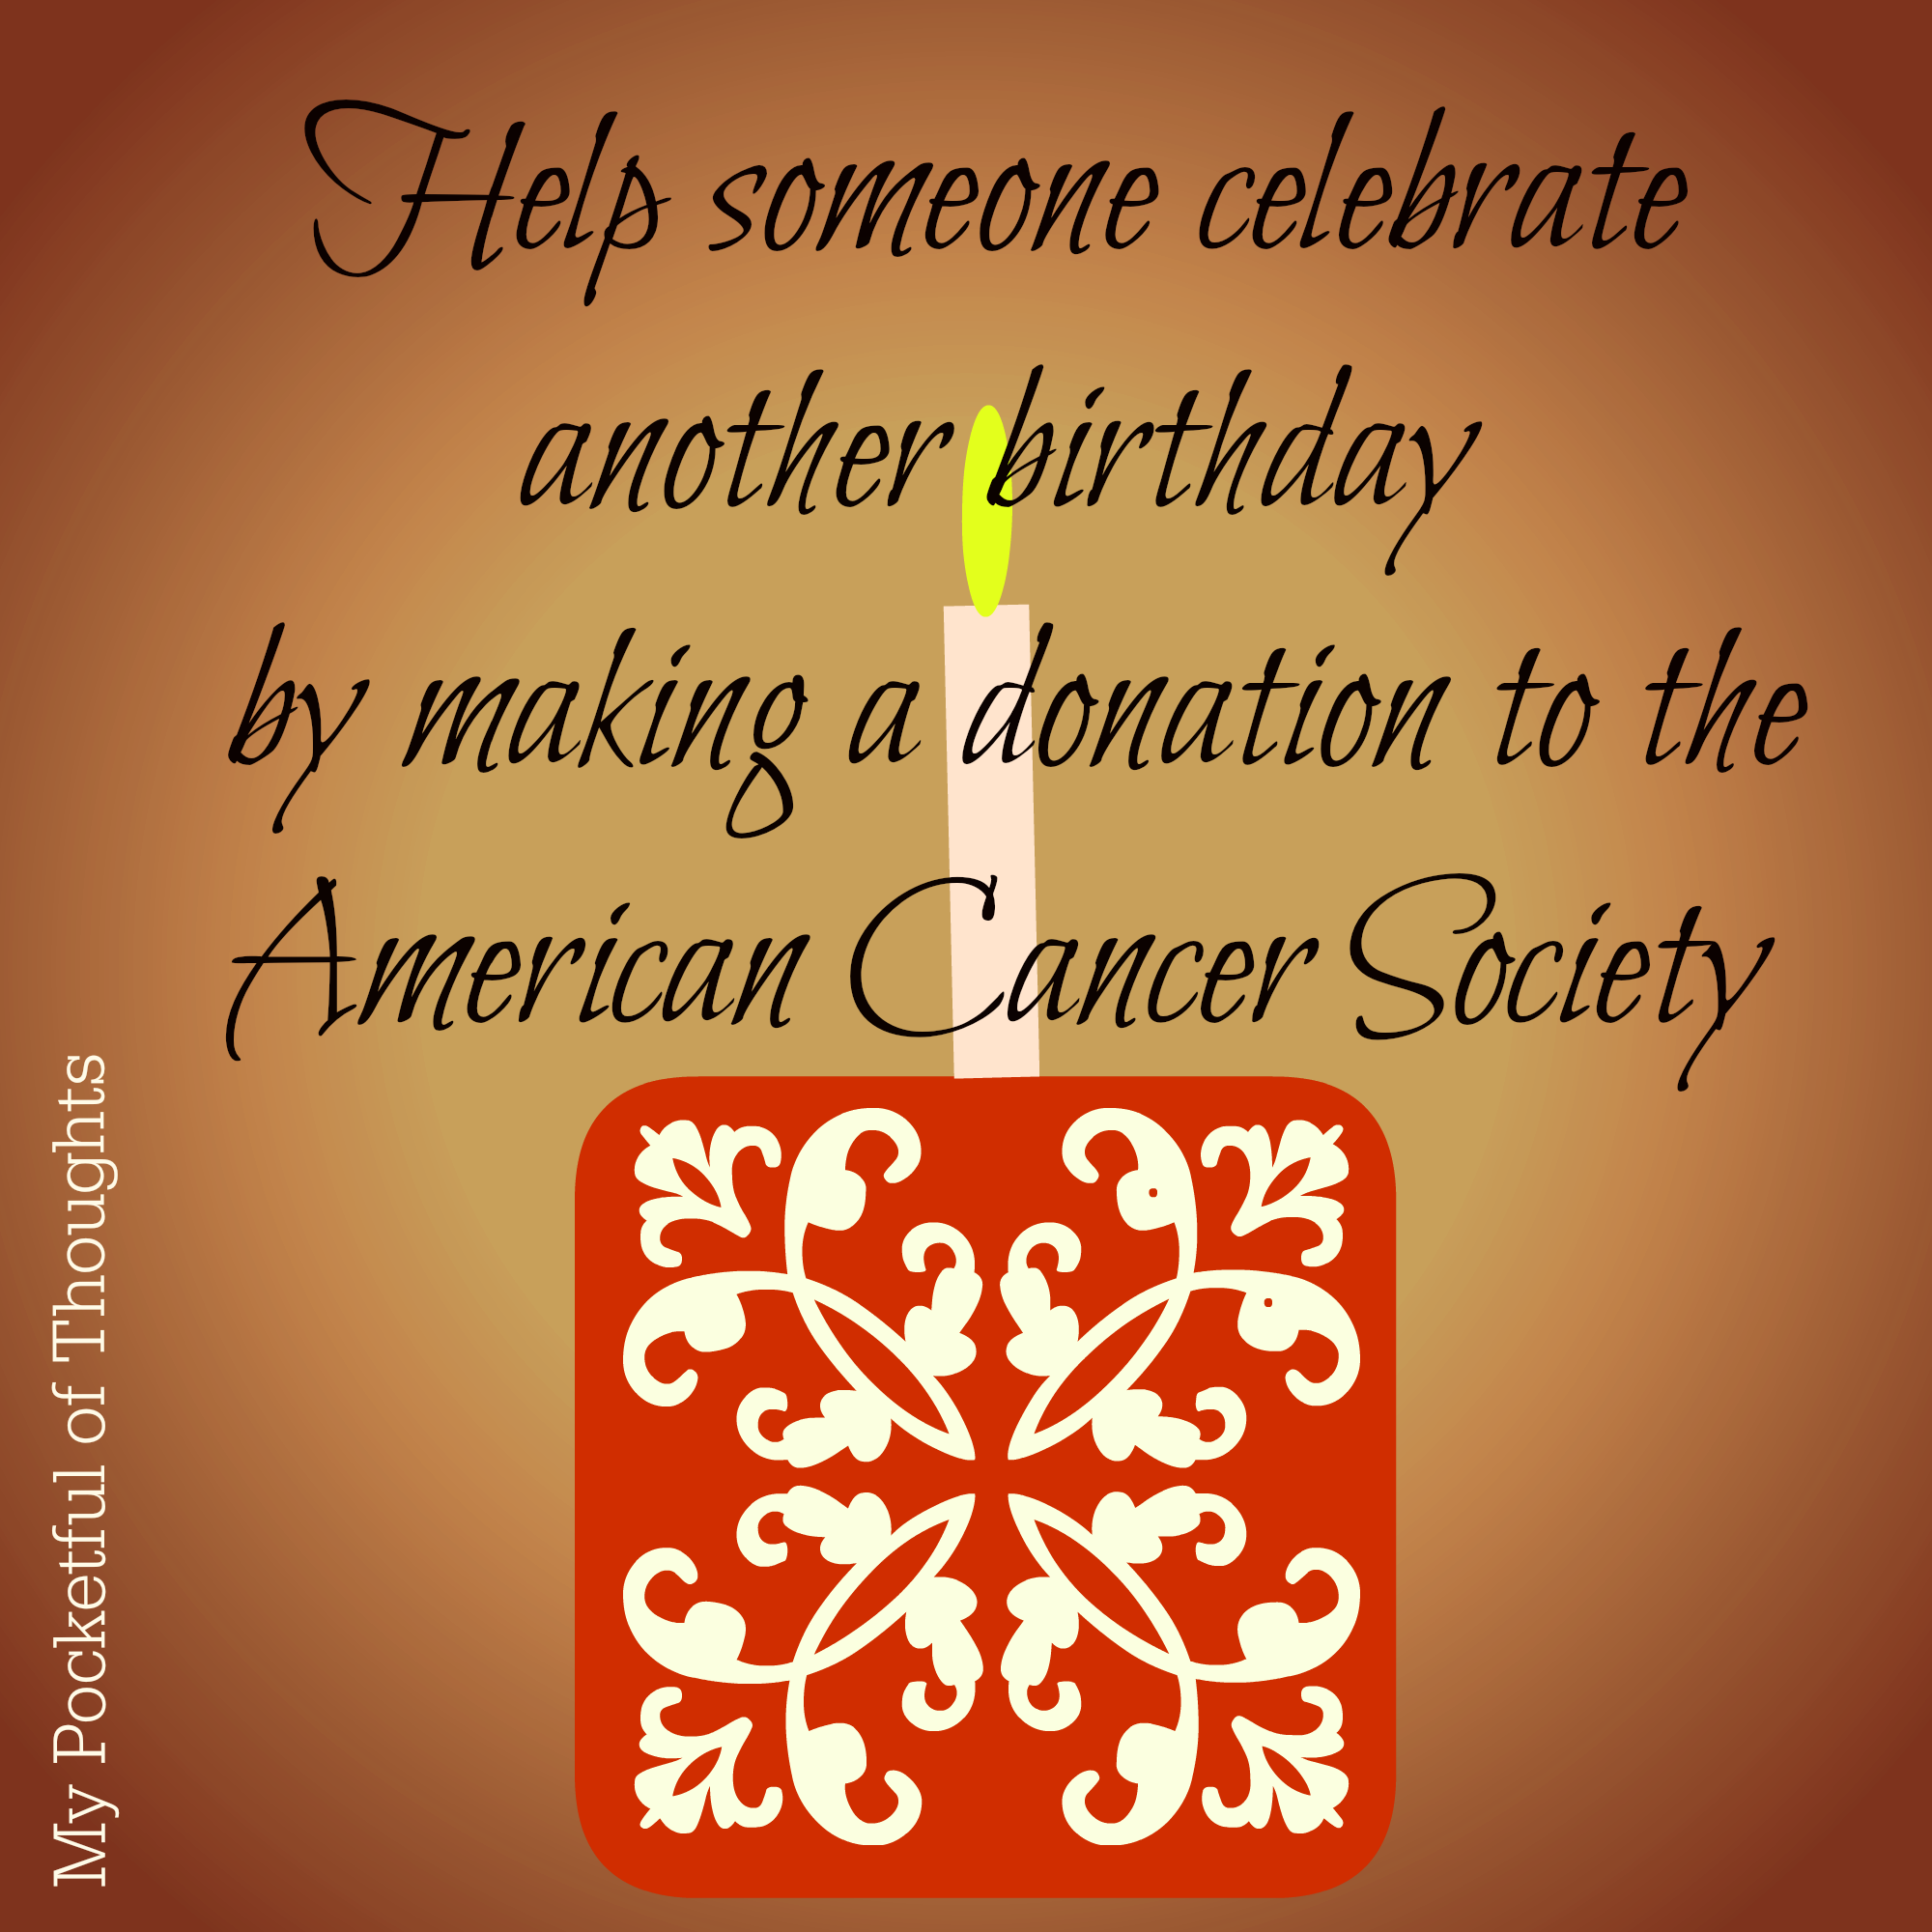 Donate to American Cancer Society! - Relay for Life #ACS ...